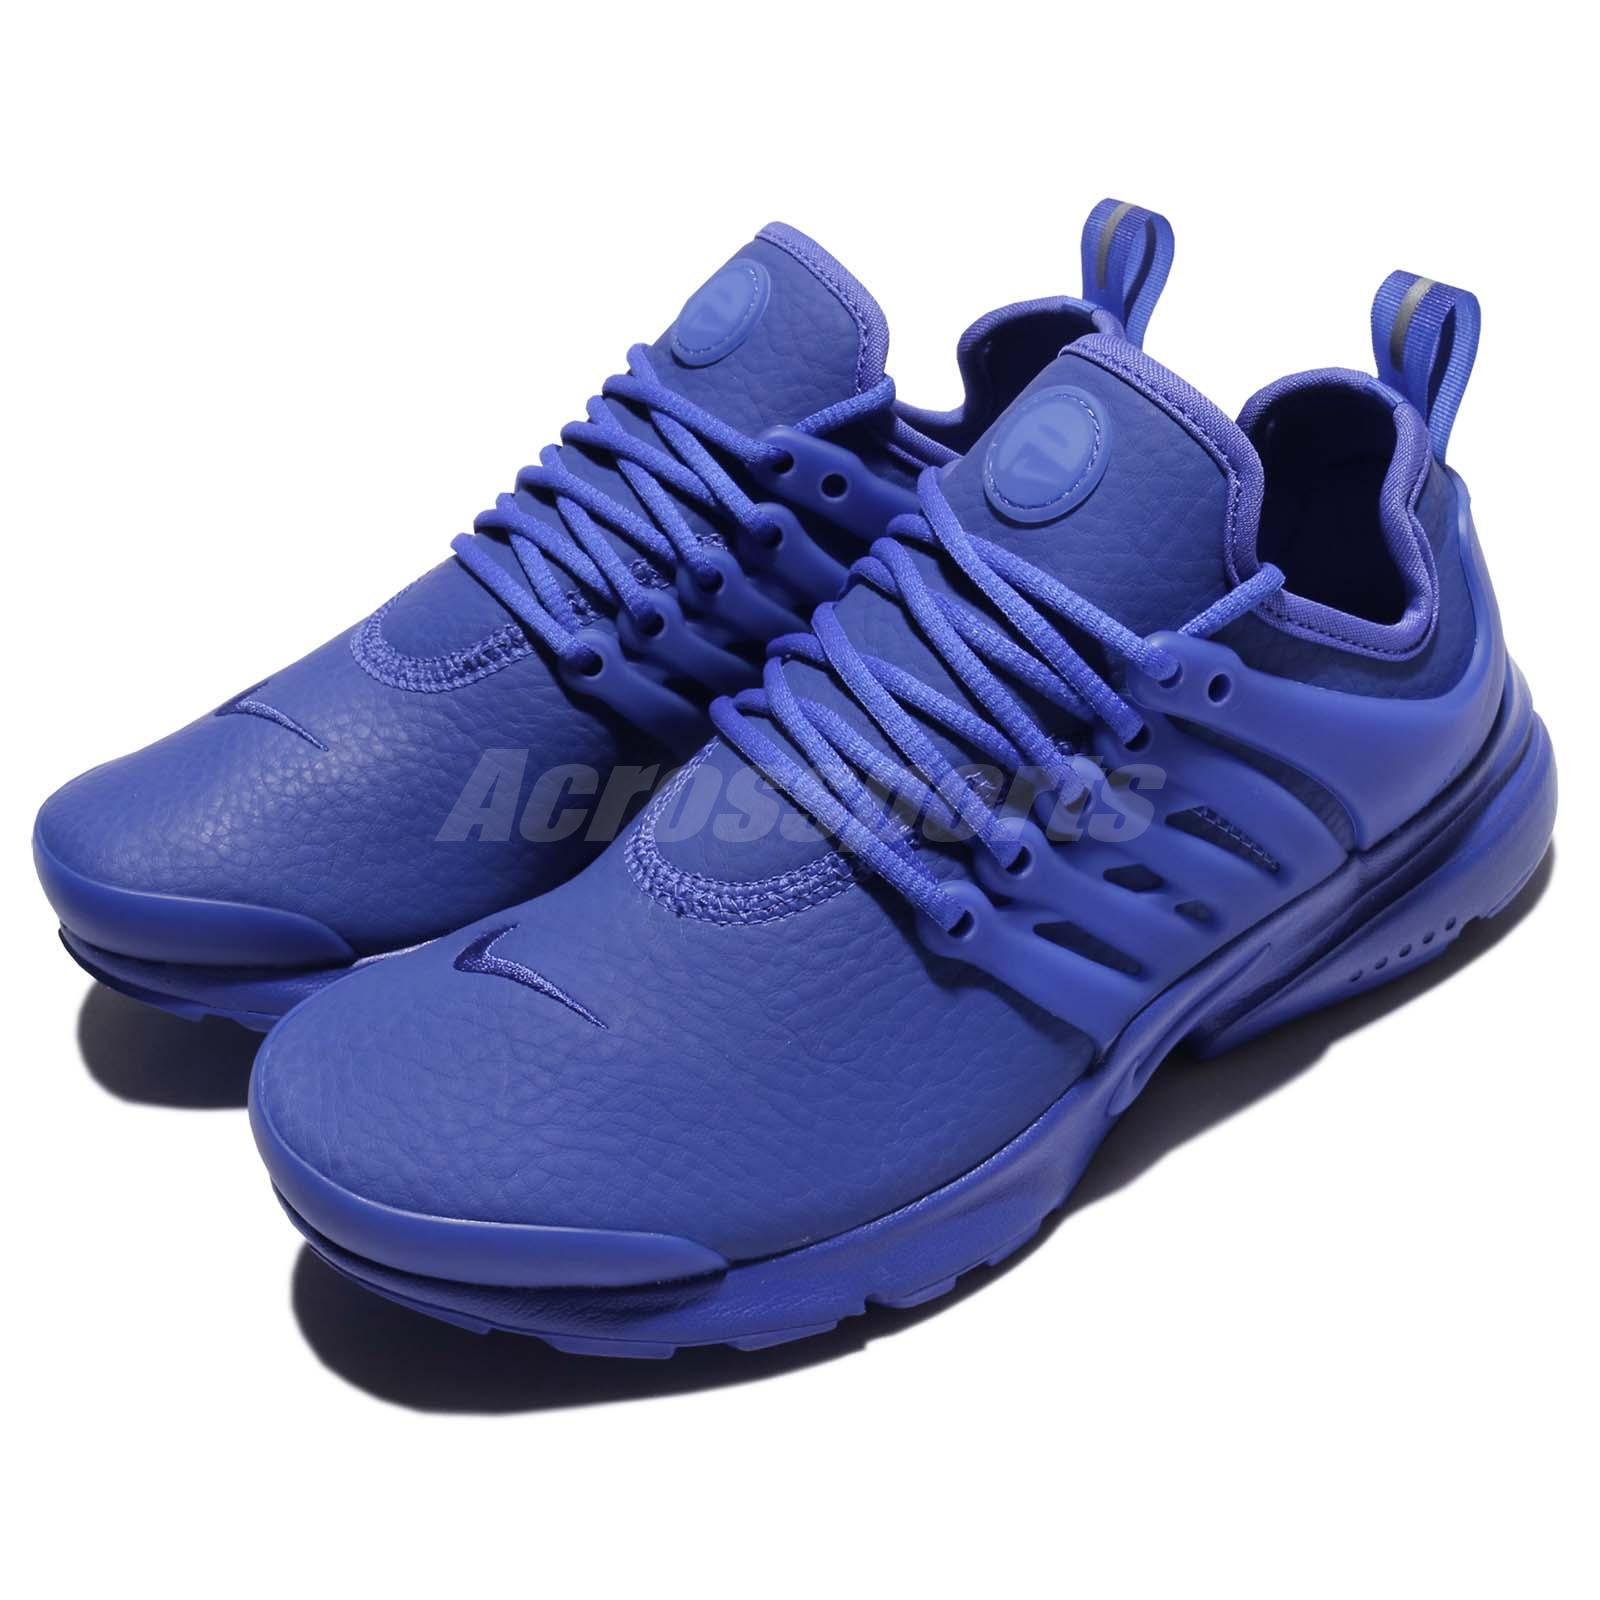 brand new 31fda b89fe Details about Nike Wmns Air Presto PRM Triple Paramount Blue Leather Women  Shoe 878071-401